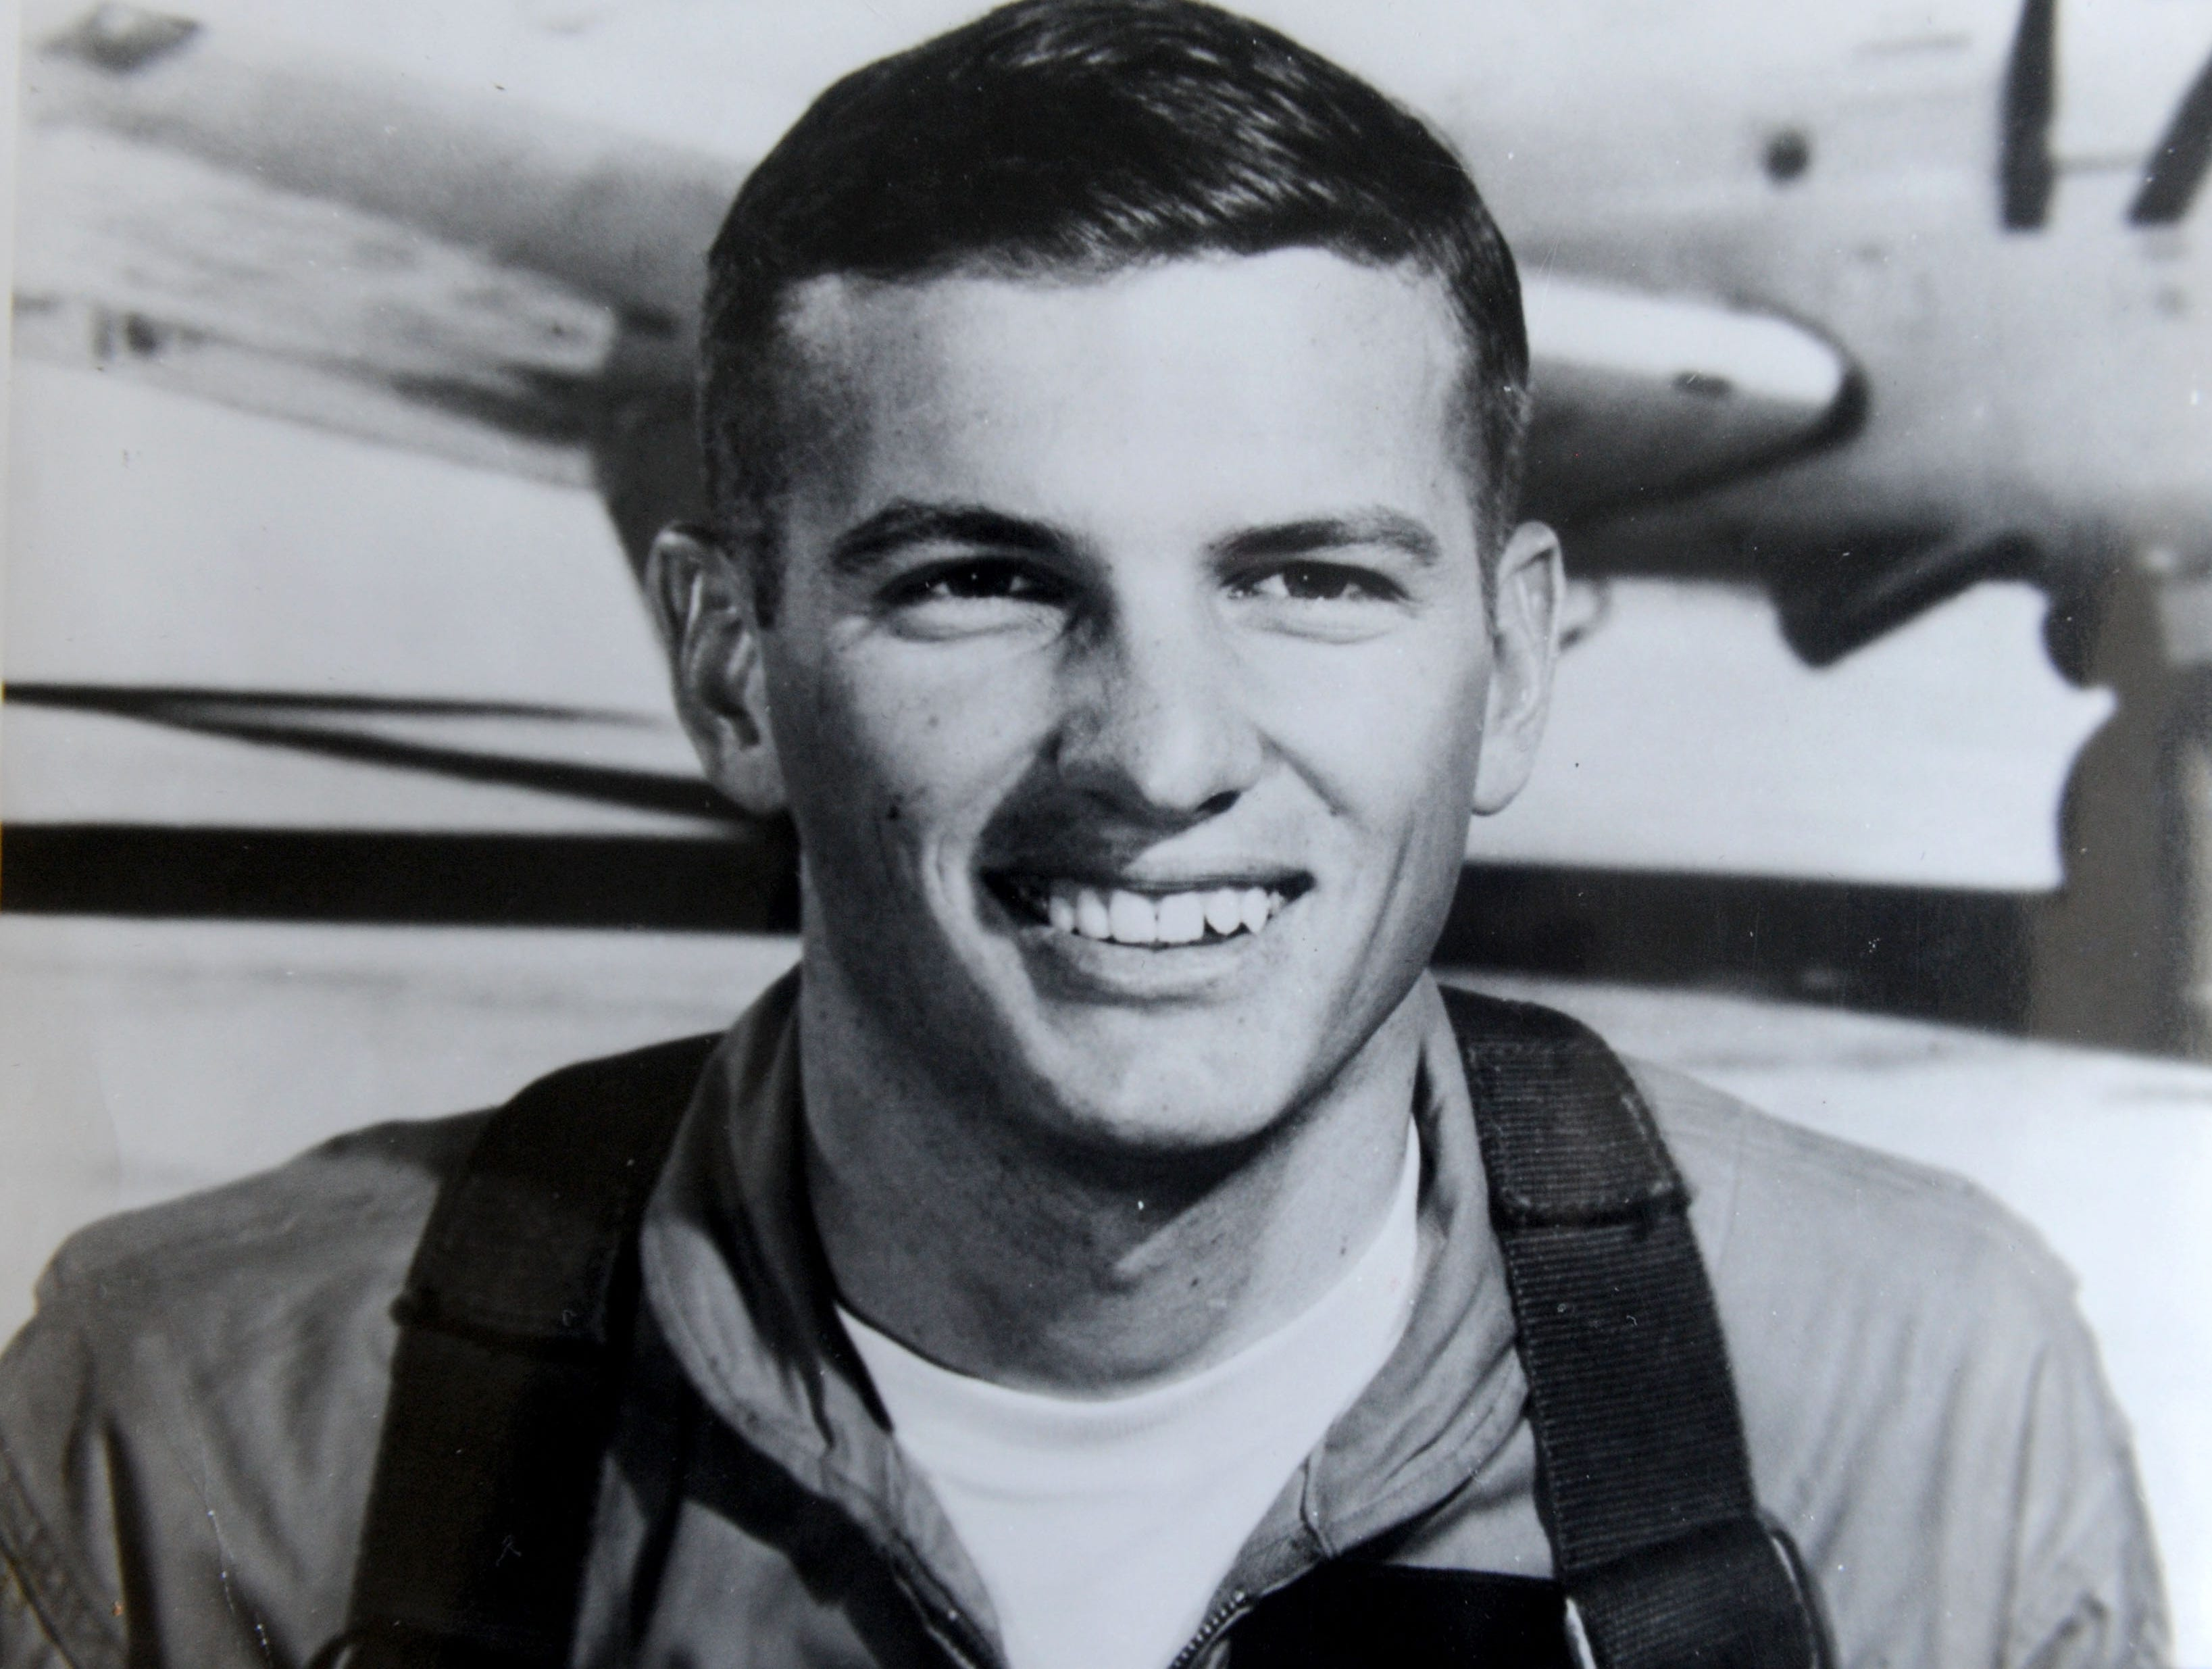 U.S. Navy Lt. Cmdr. Larry J. Stevens was shot down over Laos on Valentine's Day 1969. His mother, Gladys Fleckenstein, of Camarillo, has never lost hope her son's remains would be found.